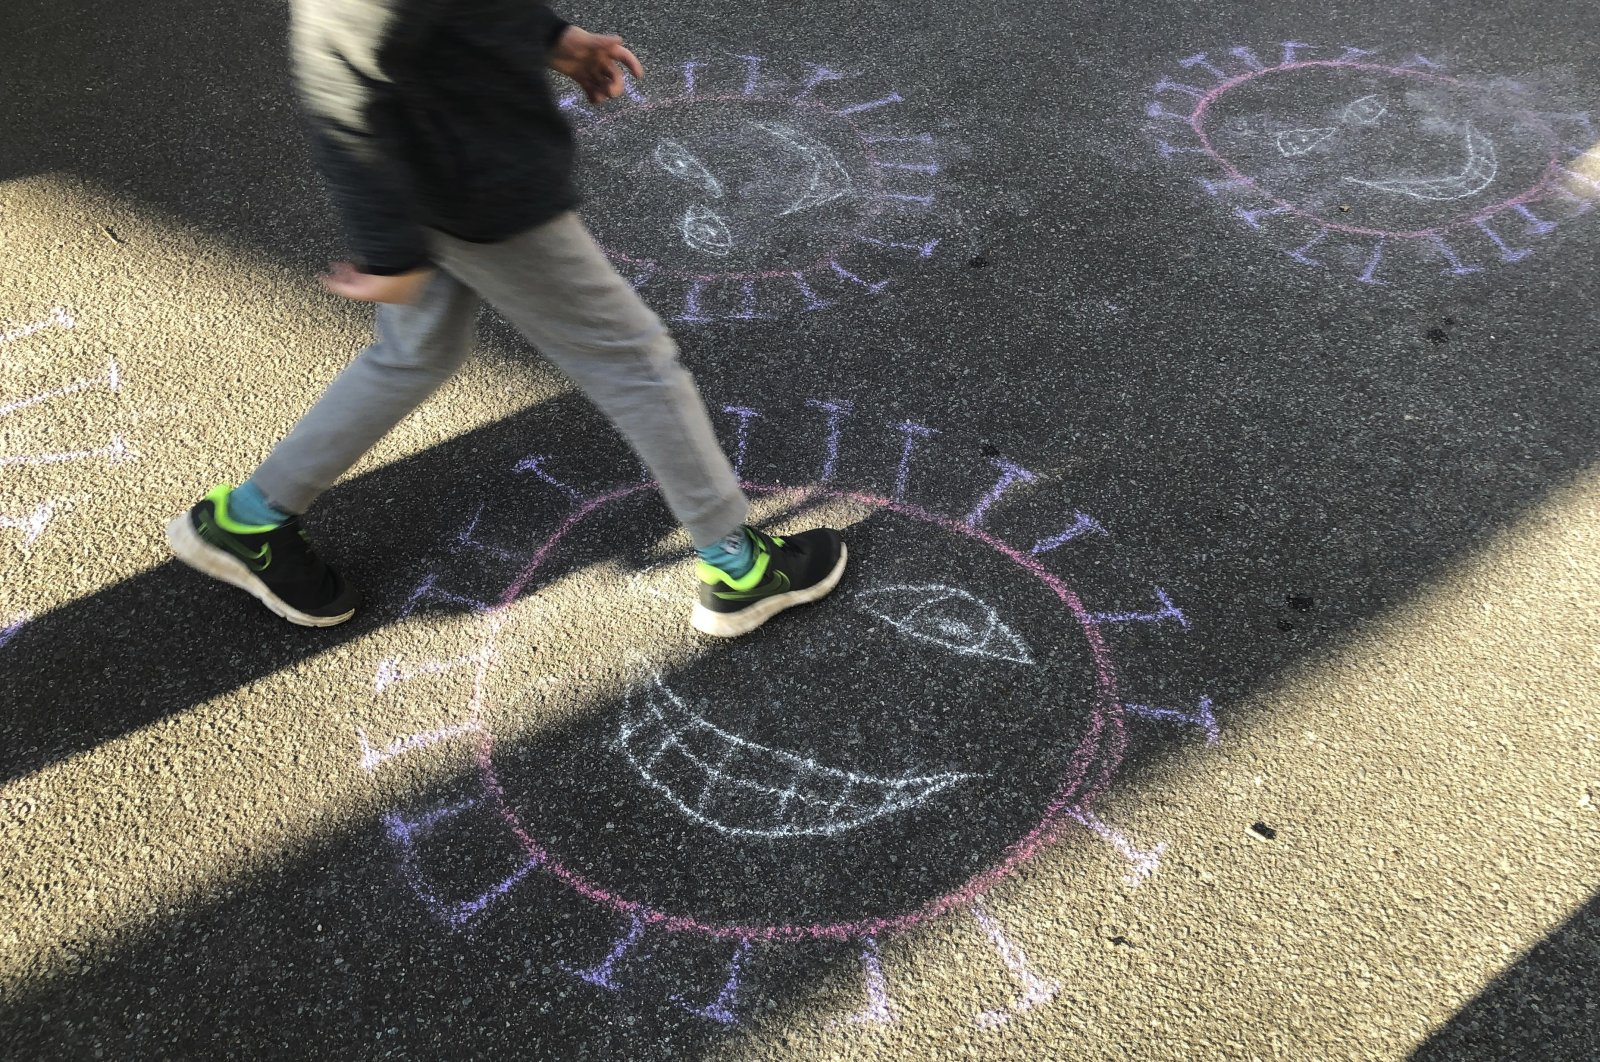 An artistic crayon depiction of the coronavirus painted by children on a street in Berlin, Germany, April 14, 2020. (AP Photo)